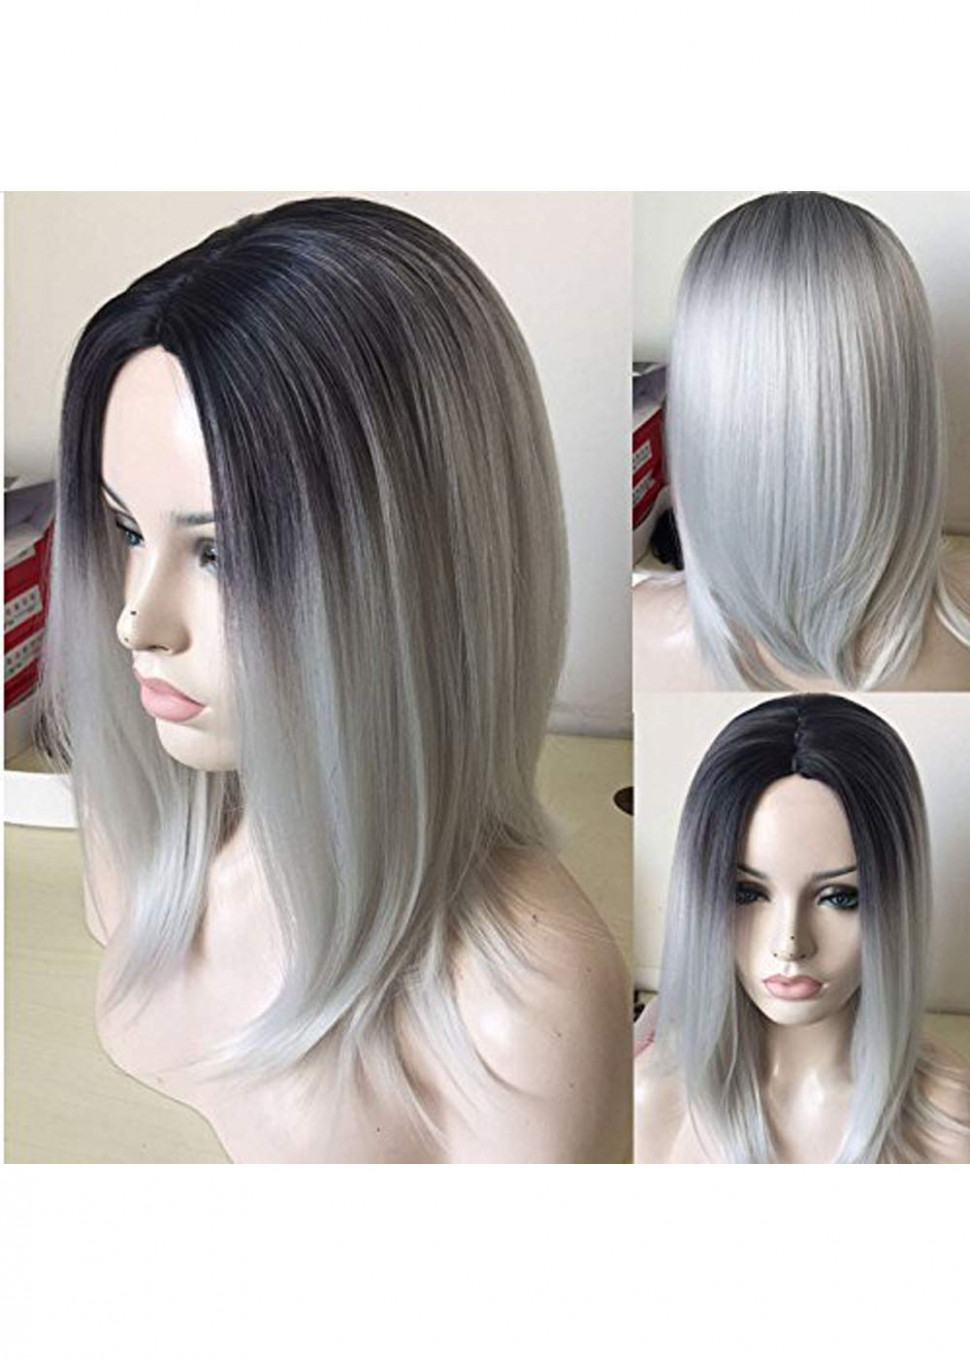 Qianbaihui gray bob wigs for women medium straight black rooted ombre grey wigs heat resistant synthetic hair wigs (black ombre silver) lds11 medium silver hair